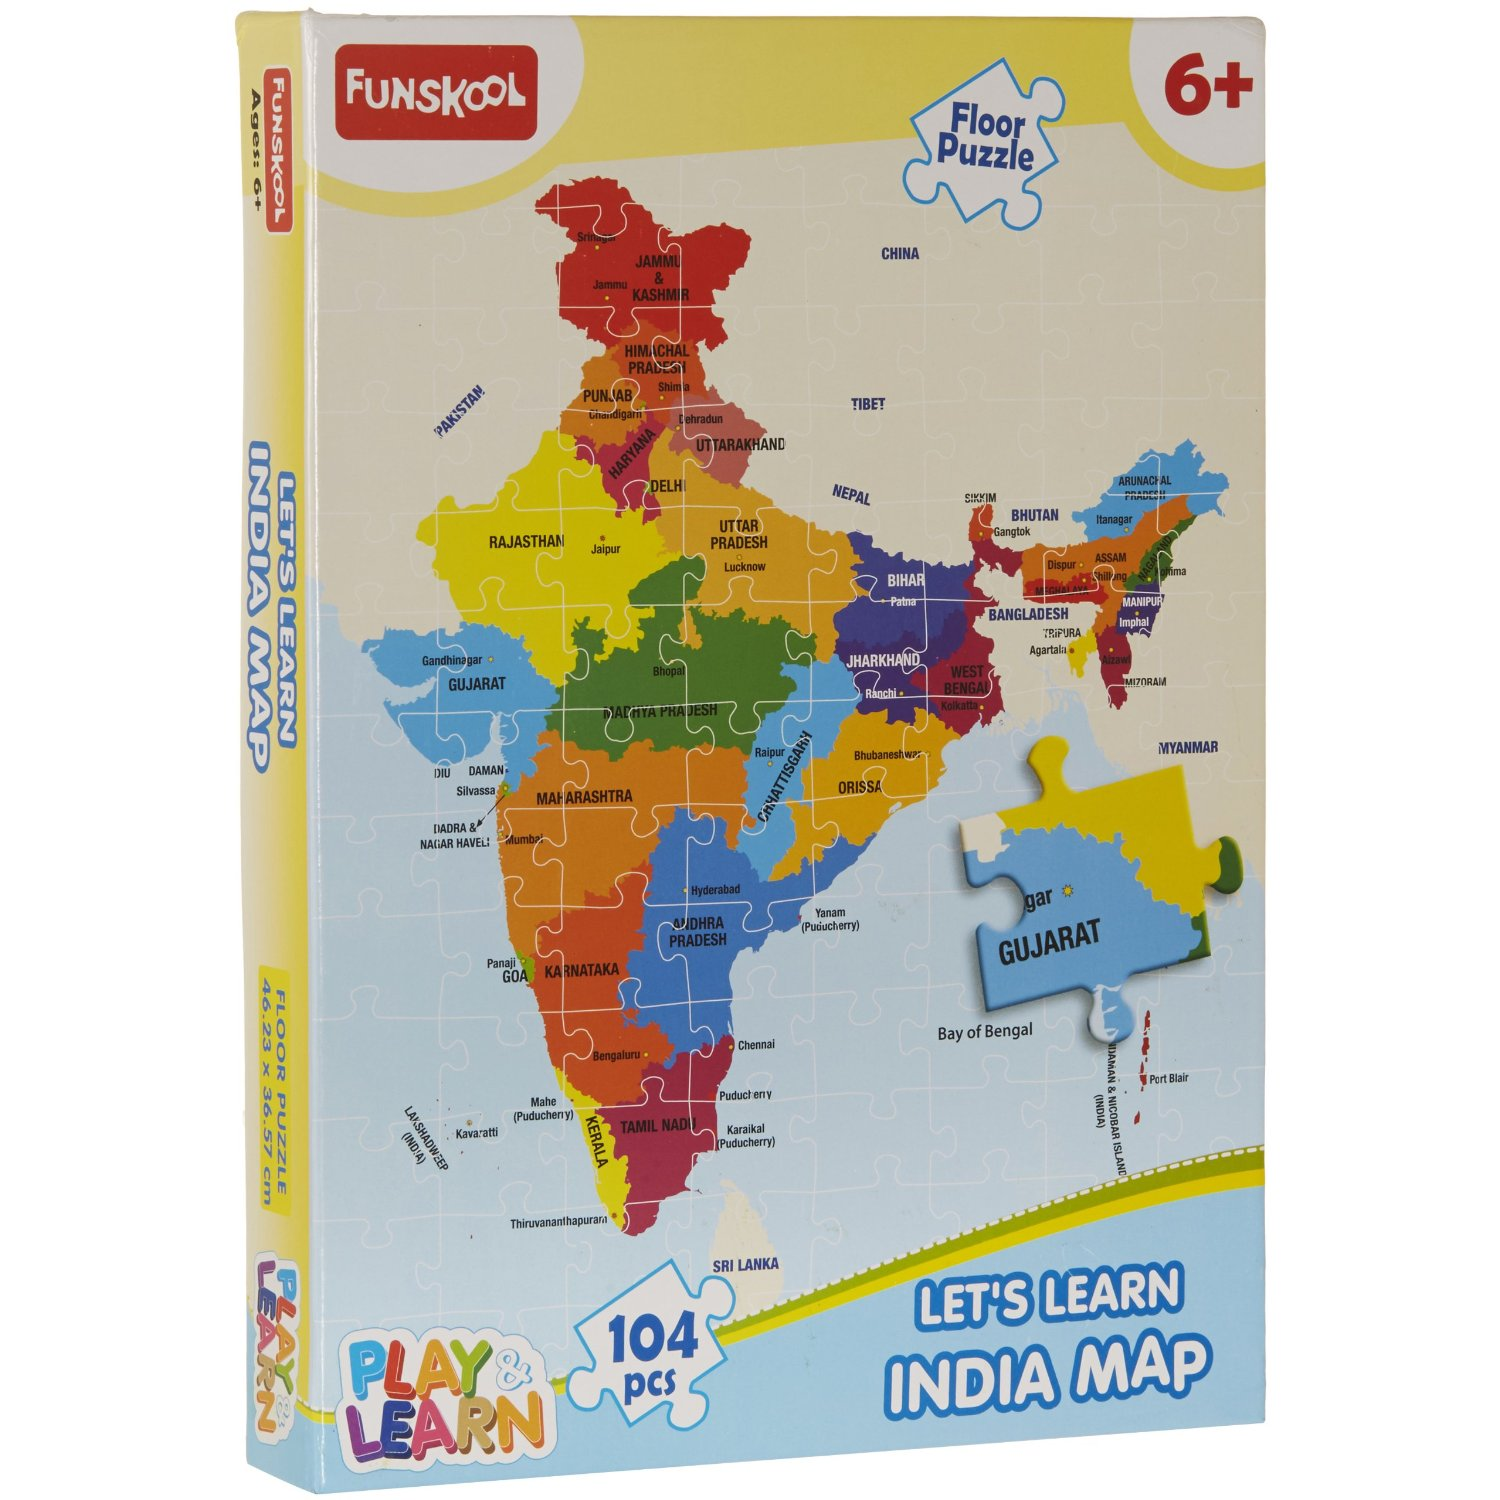 Map Usa Quizzes Map Images US States Map Puzzle Game Android Apps - Us map online puzzle